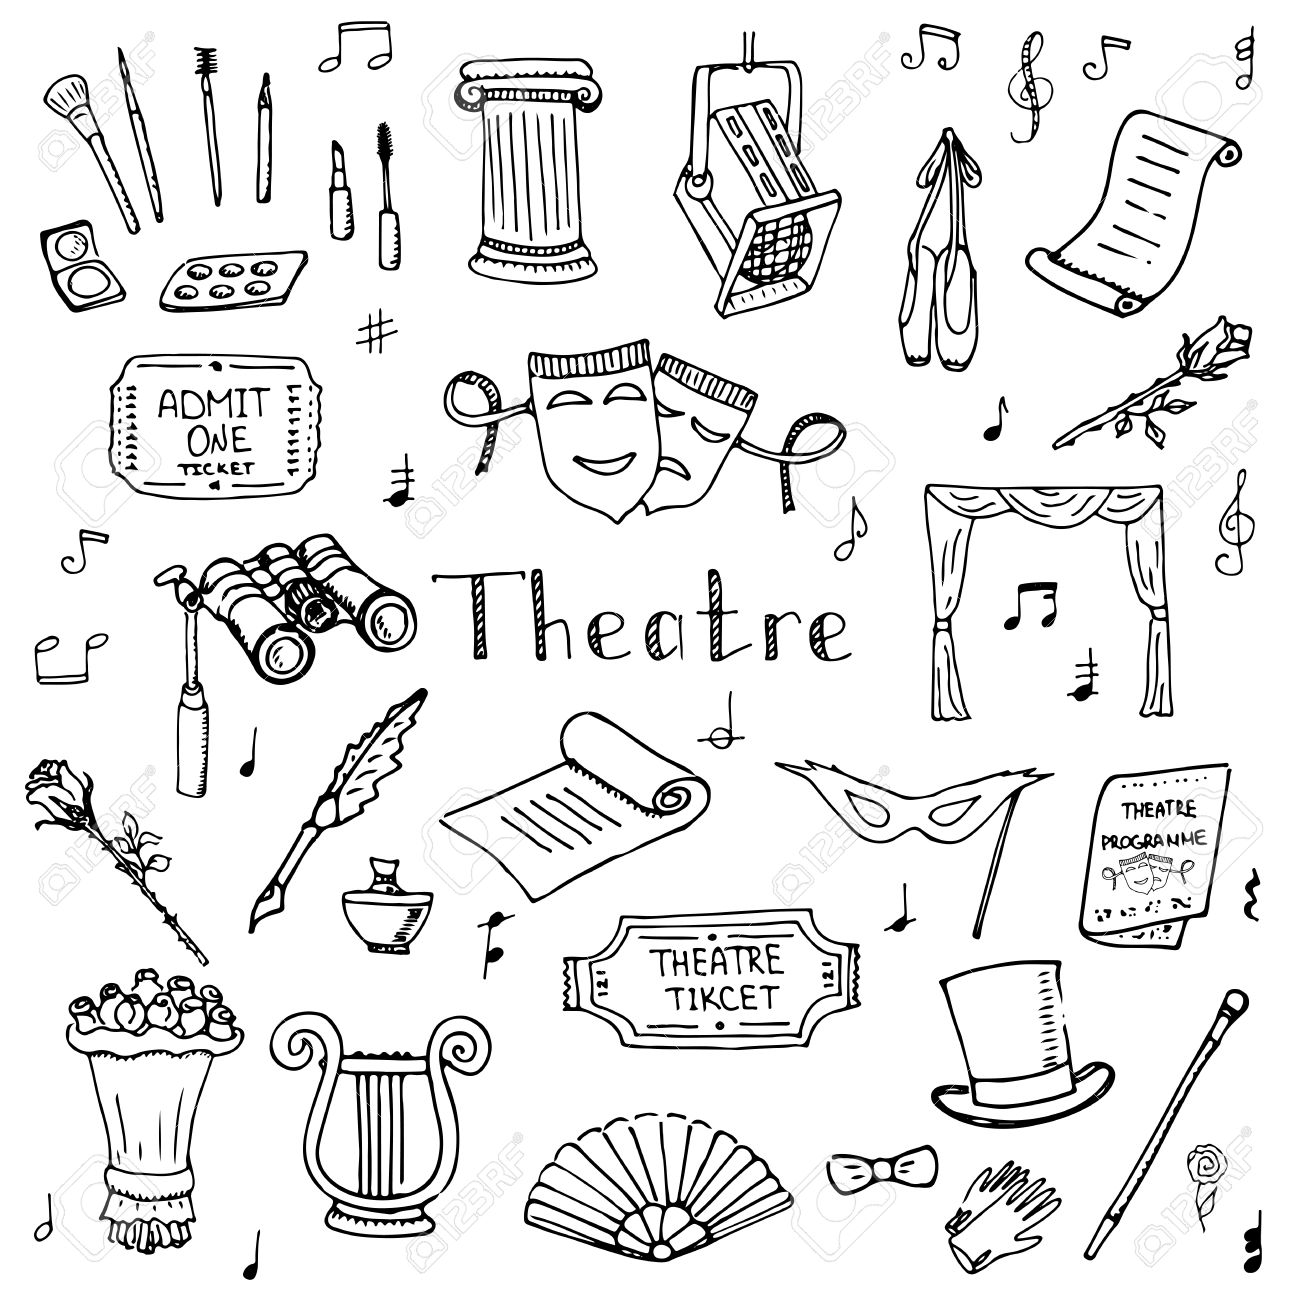 Hand drawn doodle Theatre set Vector illustration Sketchy theater icons Theatre acting performance elements Ticket Masks Lyra Flowers Curtain stage Musical notes Pointe shoes Make-up artist tools - 54972633